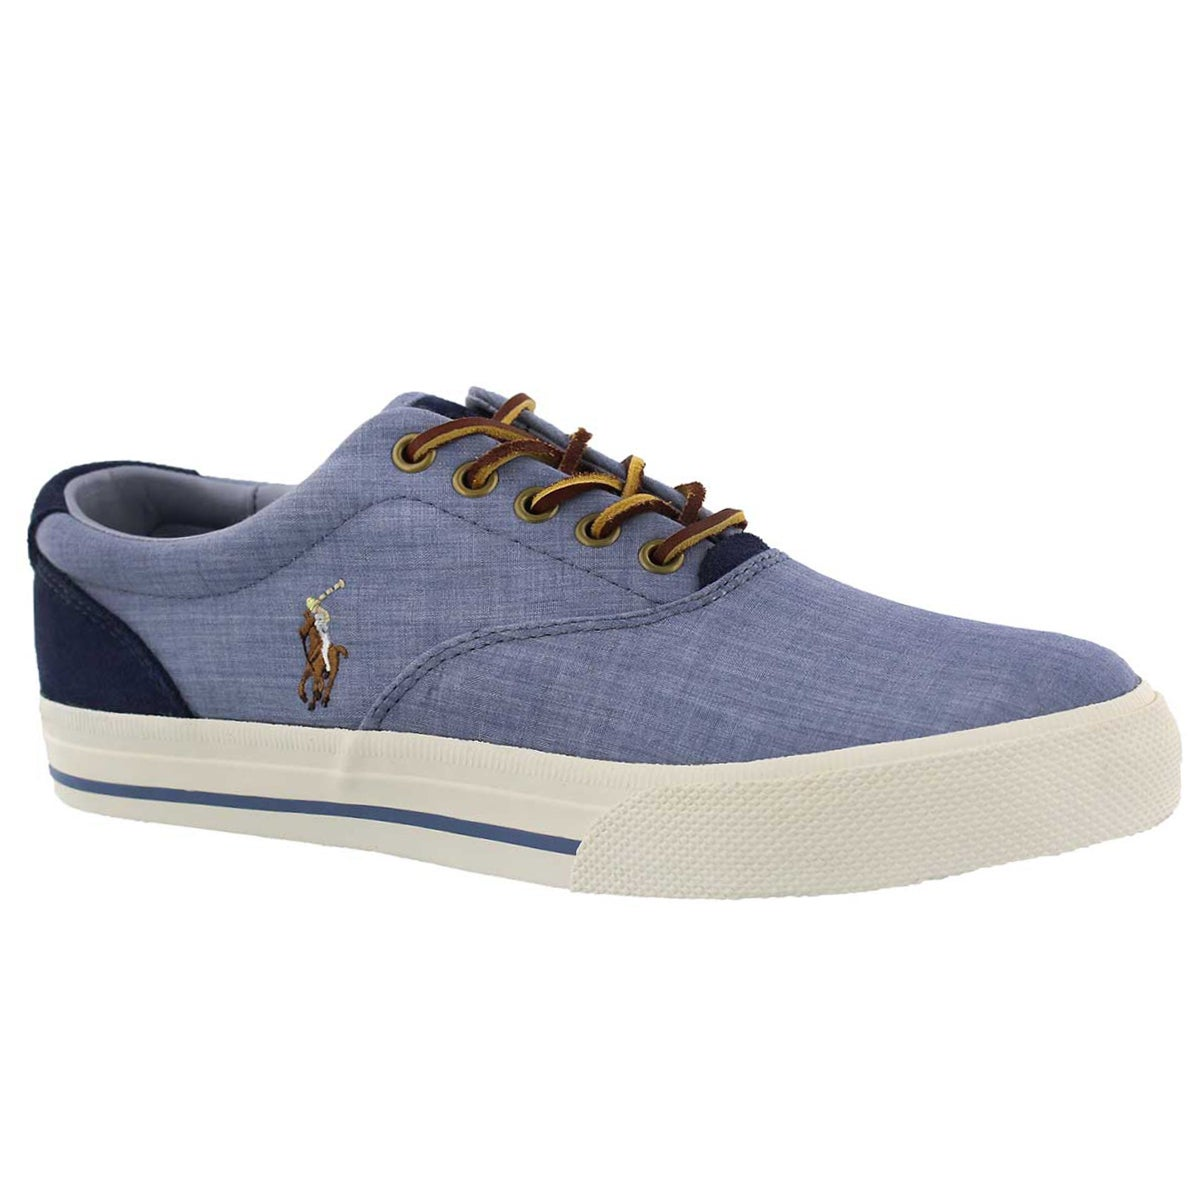 Men's VAUGHN blue/indigo canvas sneakers